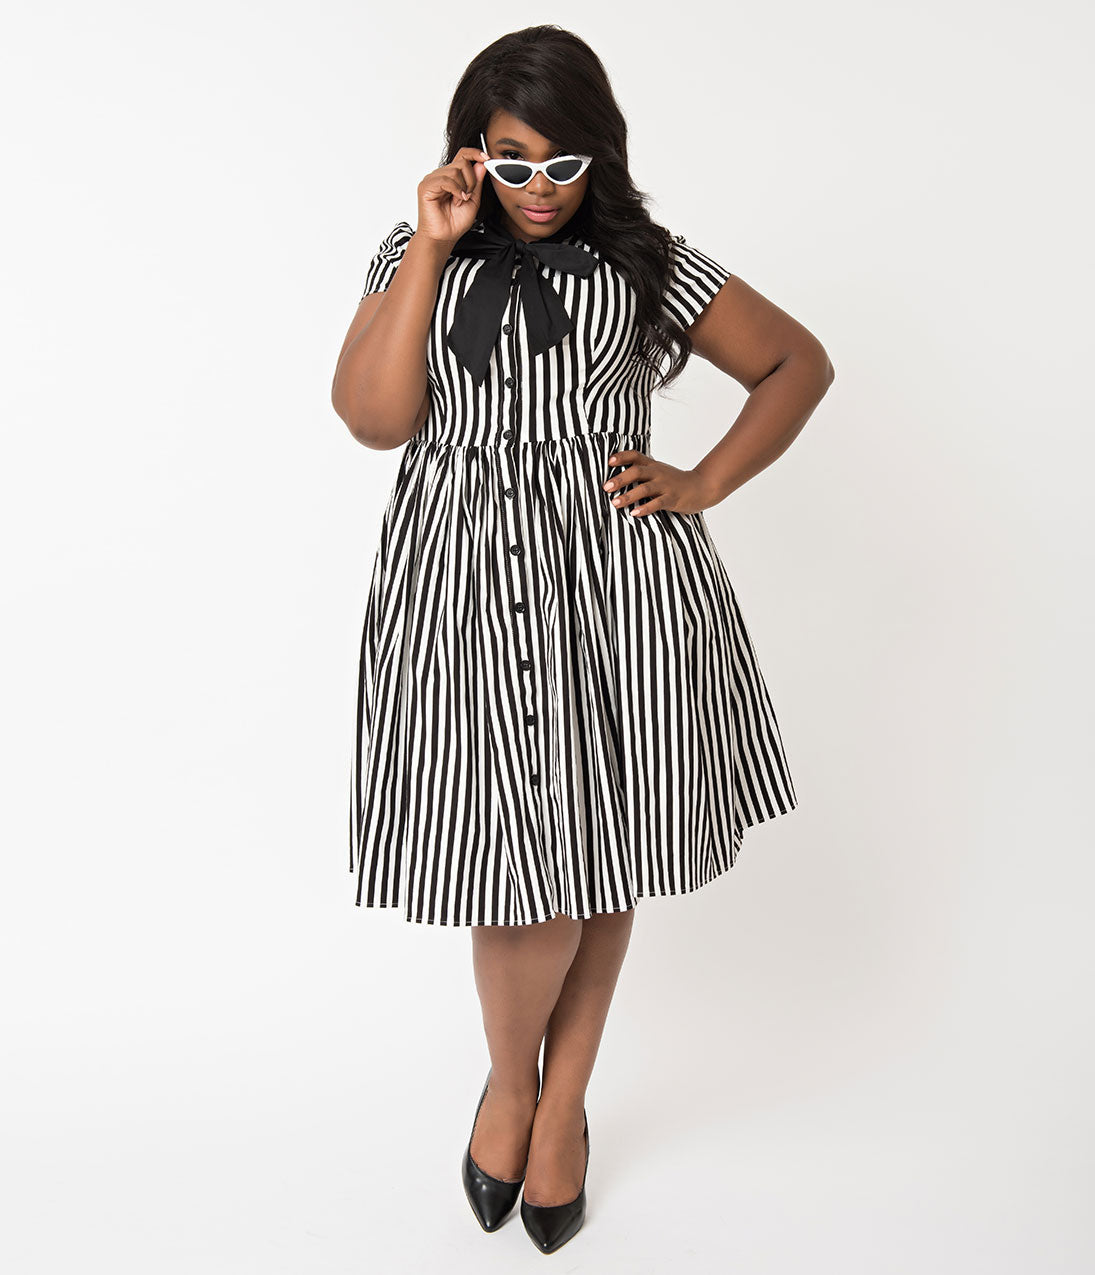 1950s Costumes- Poodle Skirts, Grease, Monroe, Pin Up, I Love Lucy Unique Vintage Plus Size 1950S Style Black  White Striped Button Up Swing Dress $98.00 AT vintagedancer.com